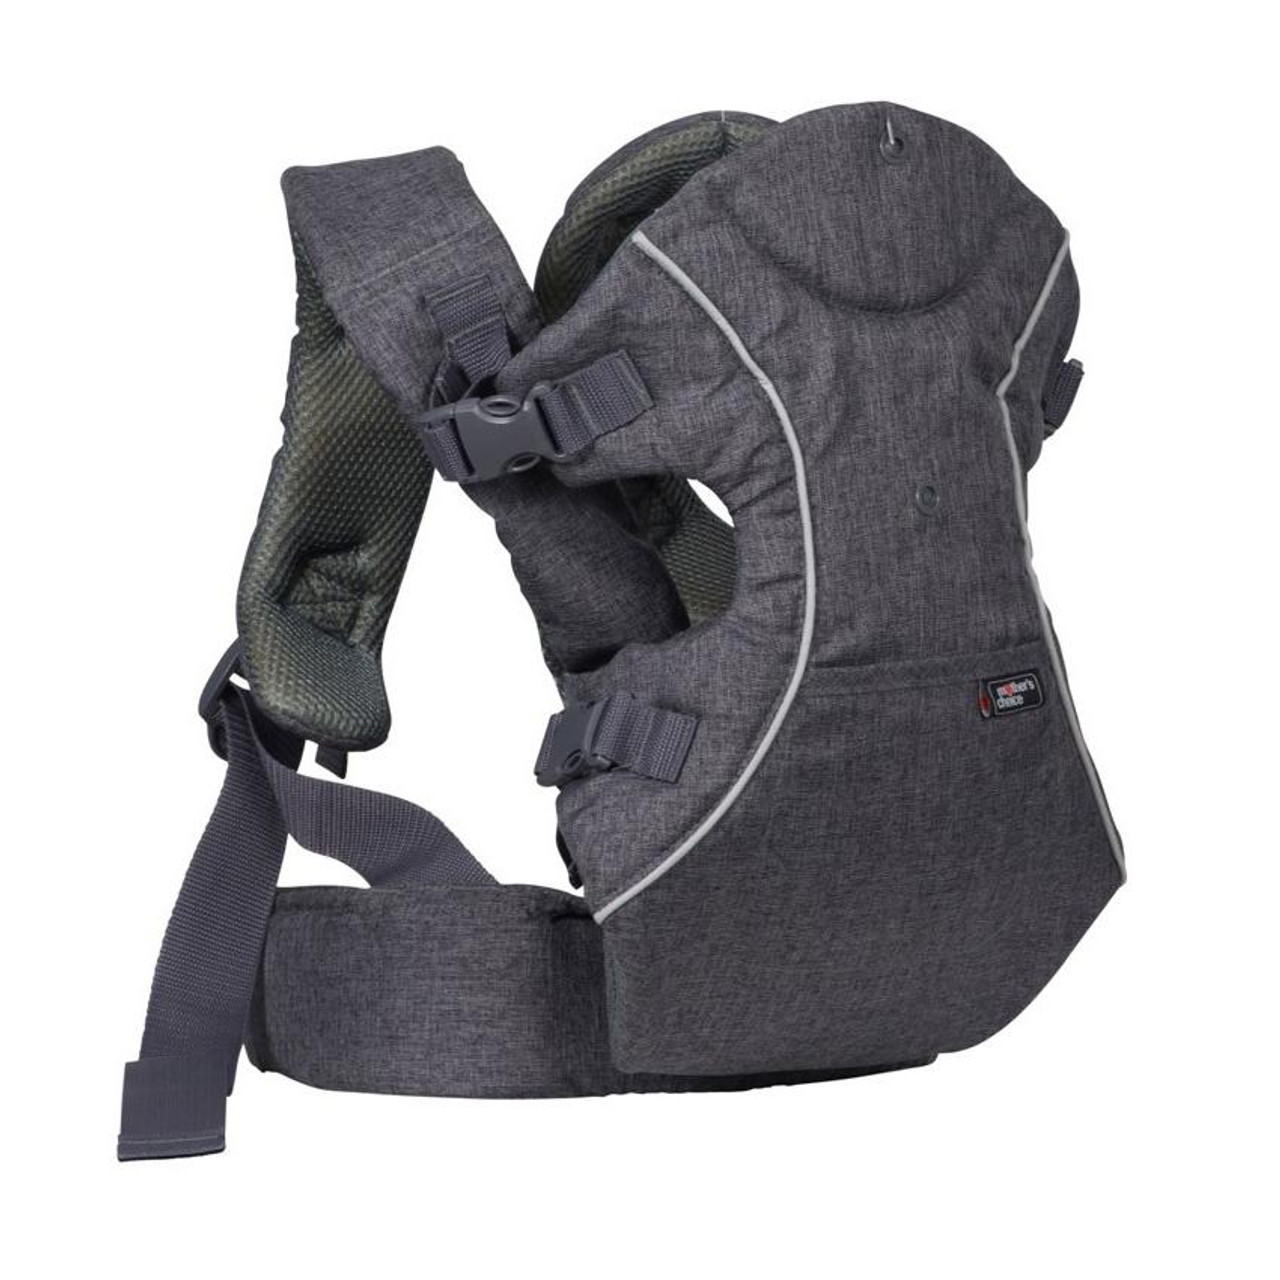 FREE Mother's Choice Cub Baby Carrier valued at $69!